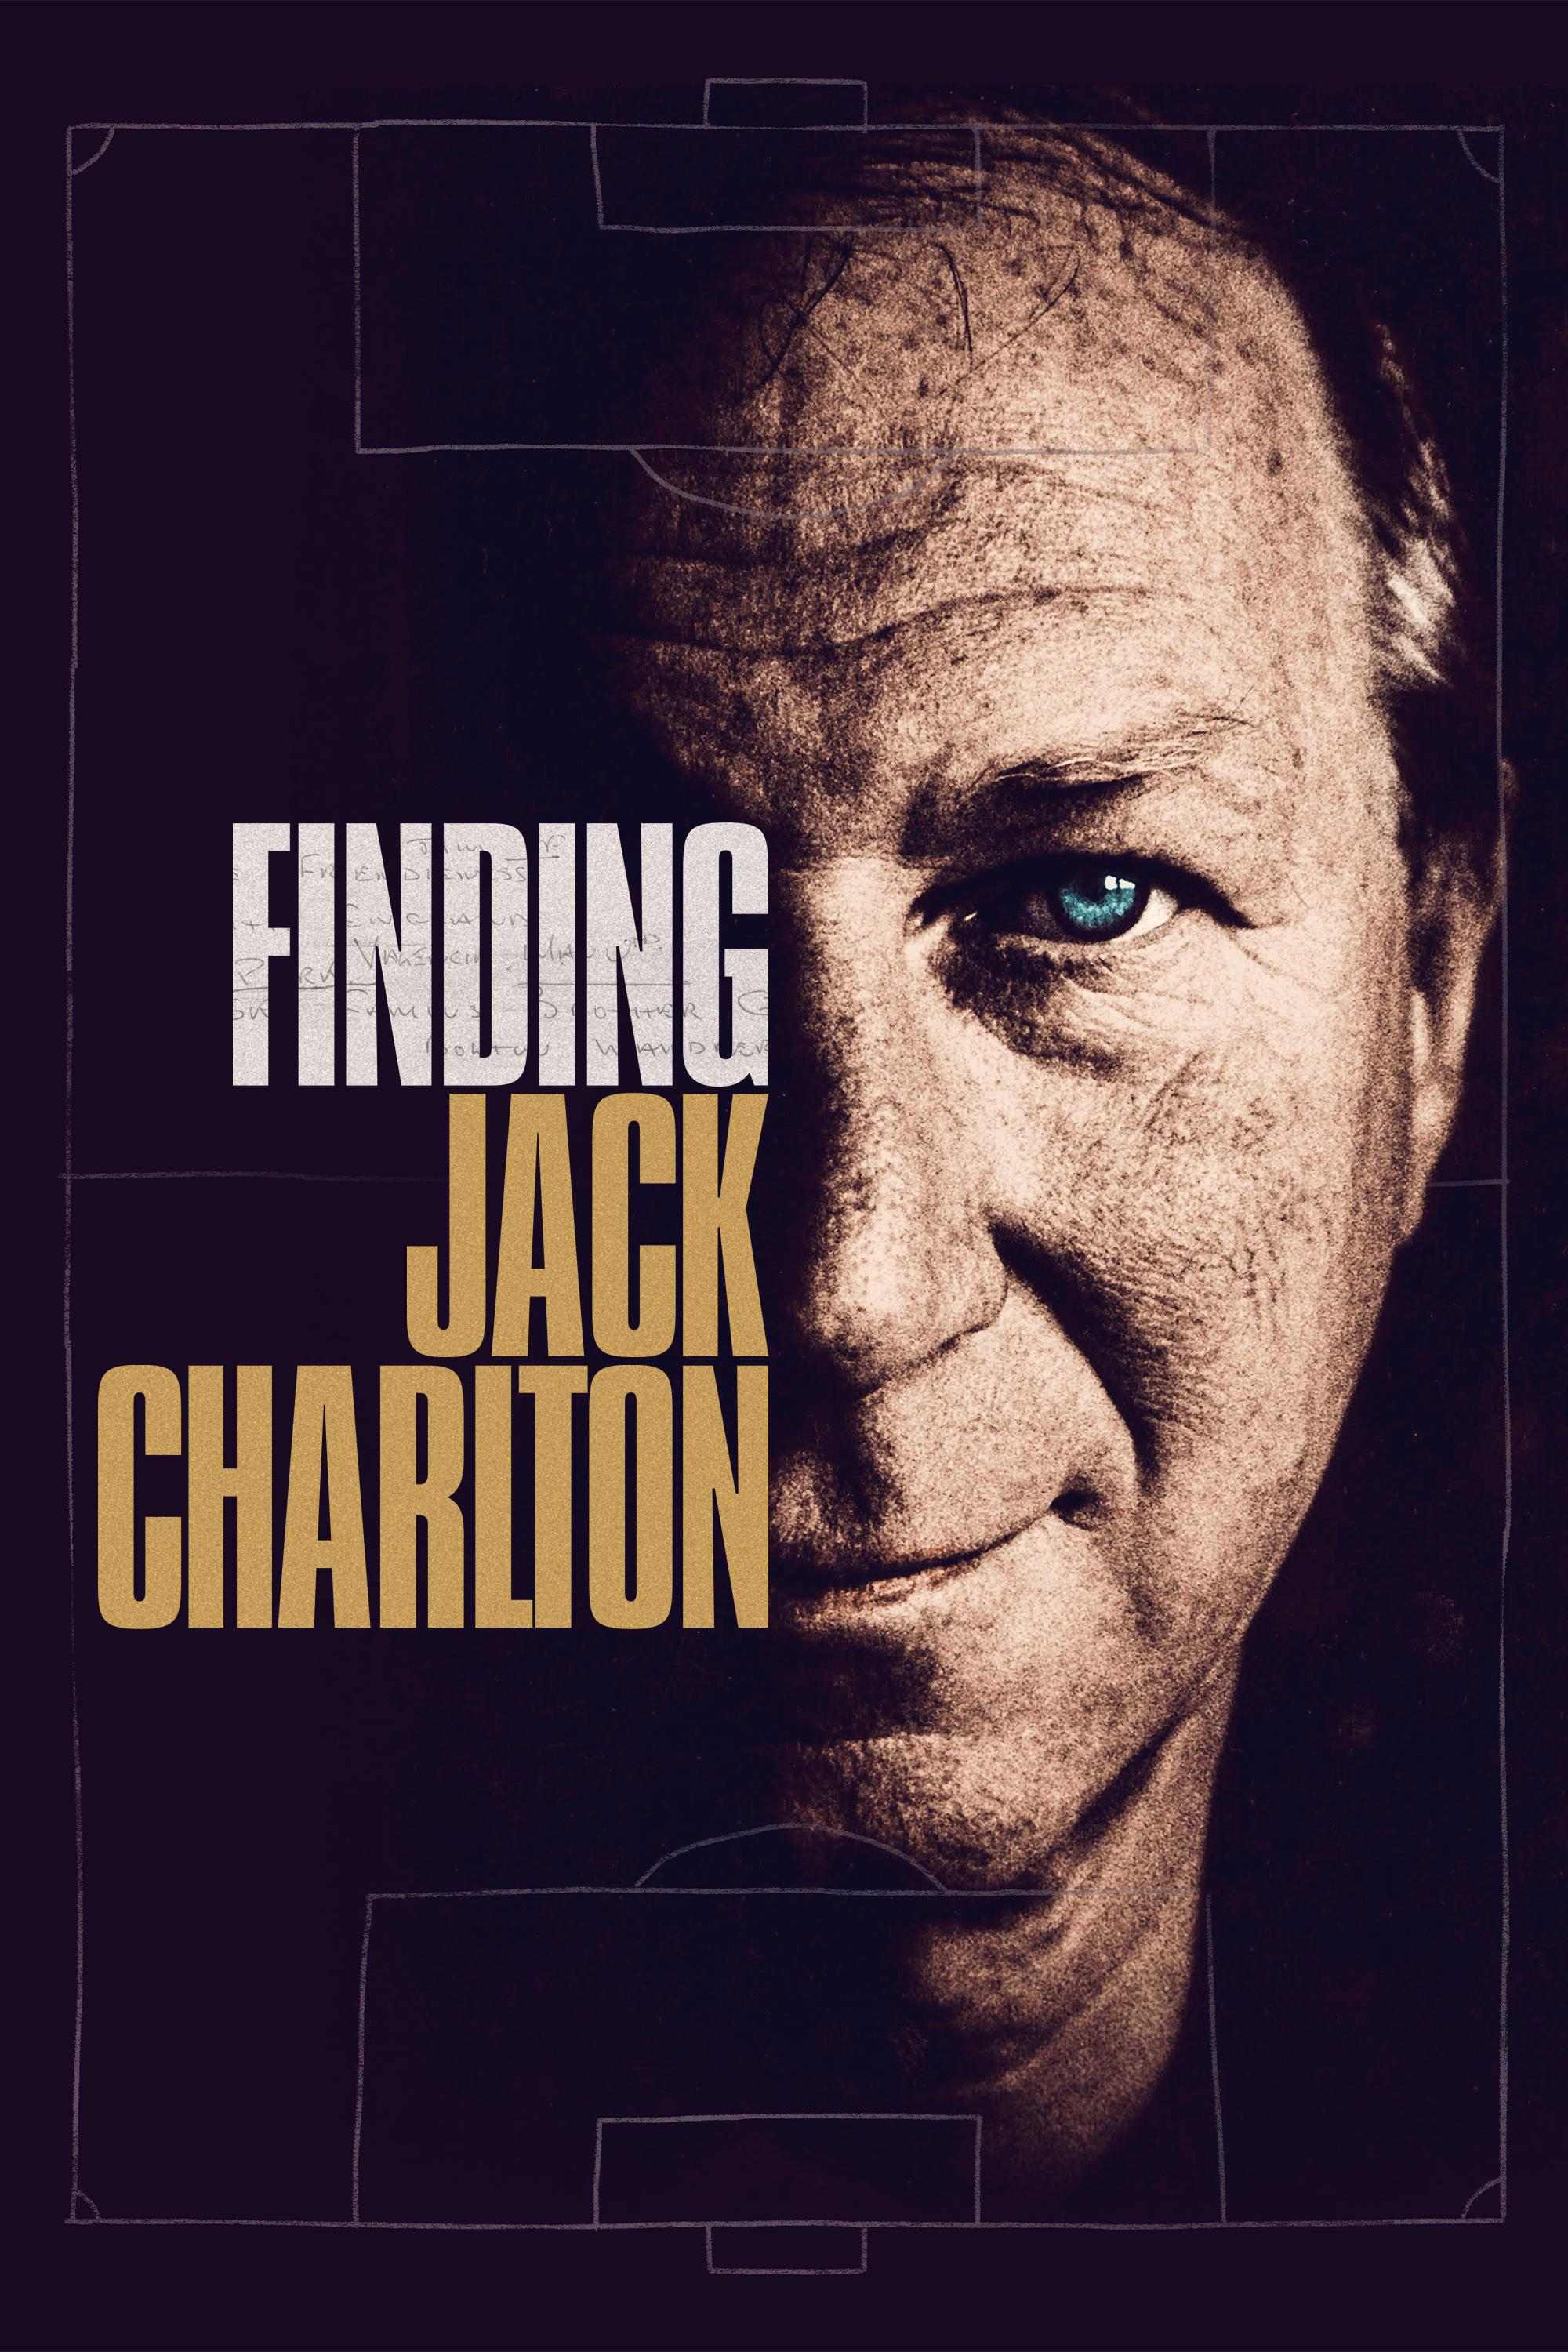 watch Finding Jack Charlton on soap2day